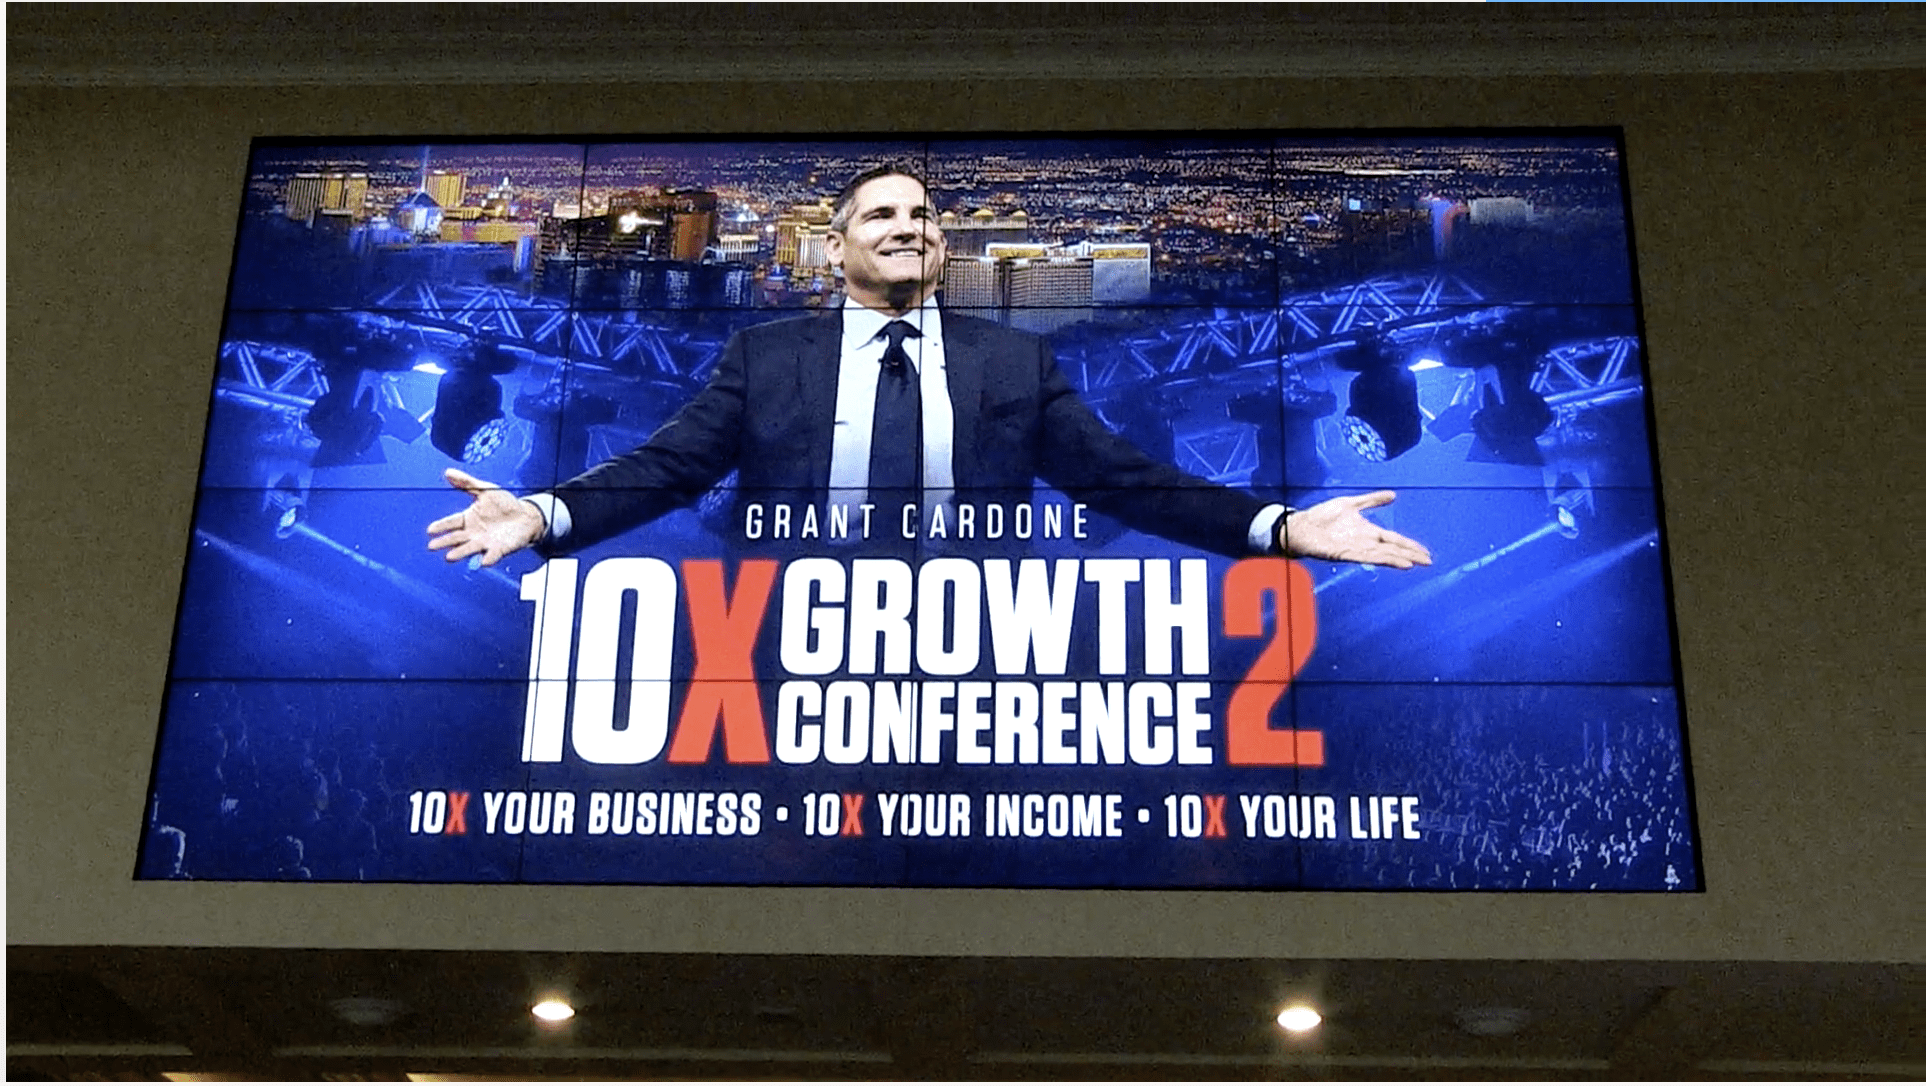 Grant Cardone, 10X Growth Conference 2